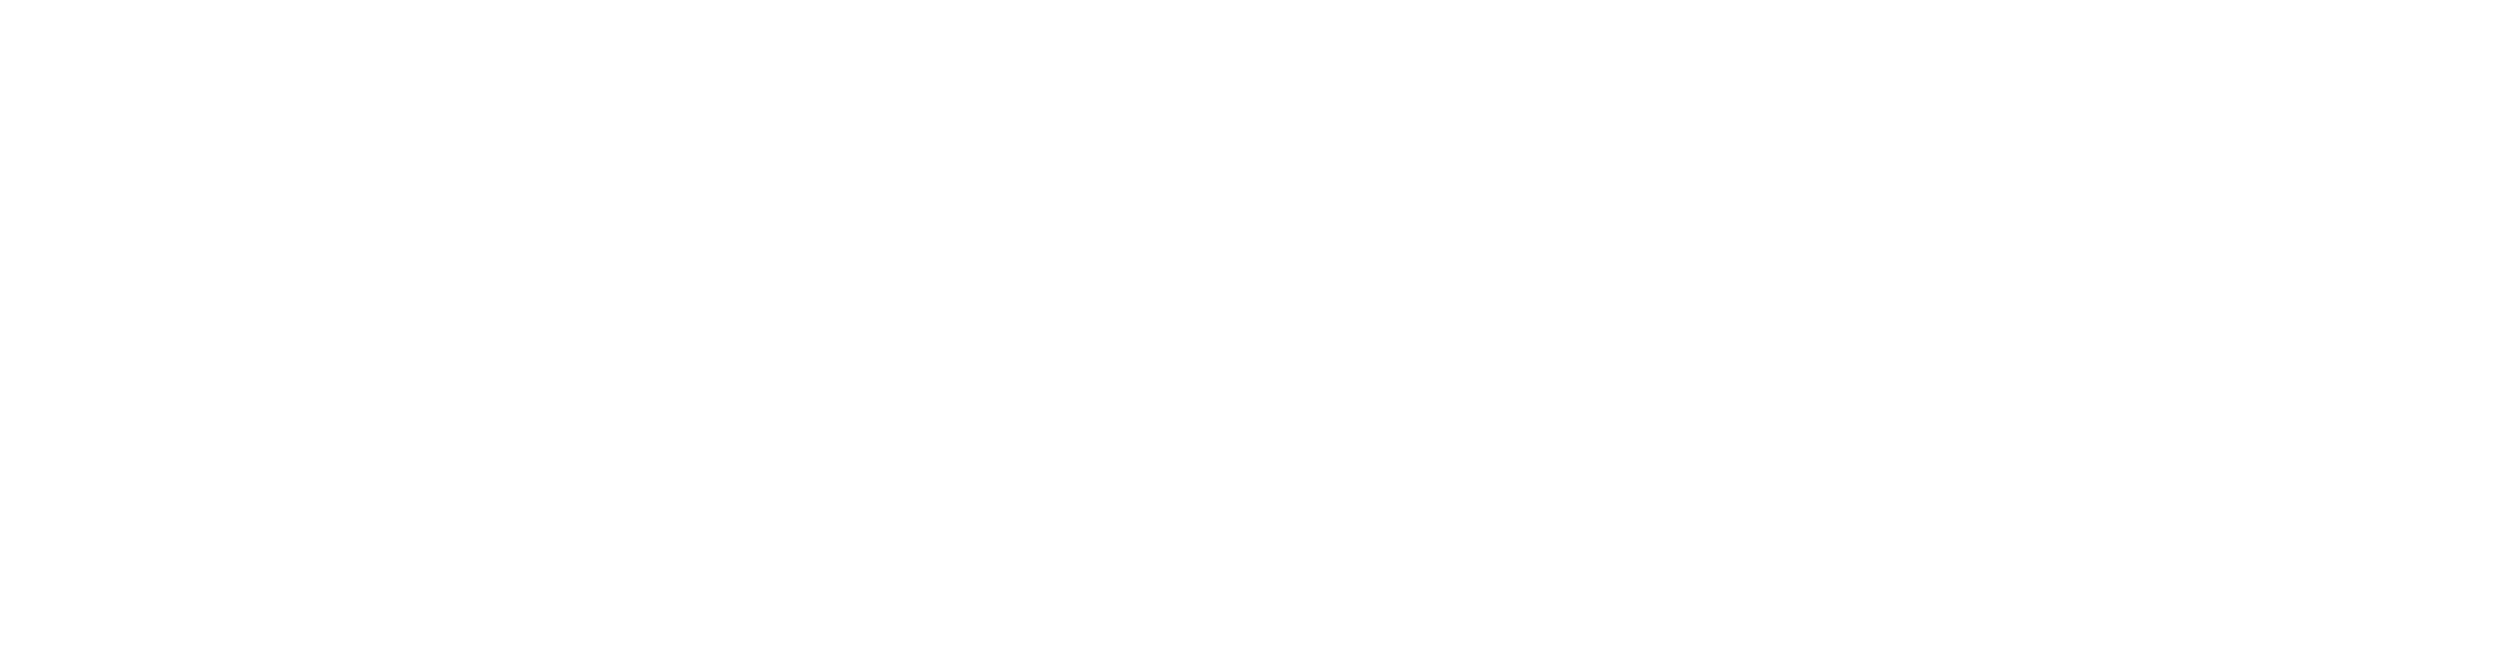 Harwood_INT_logo_NO Tagline-W.png